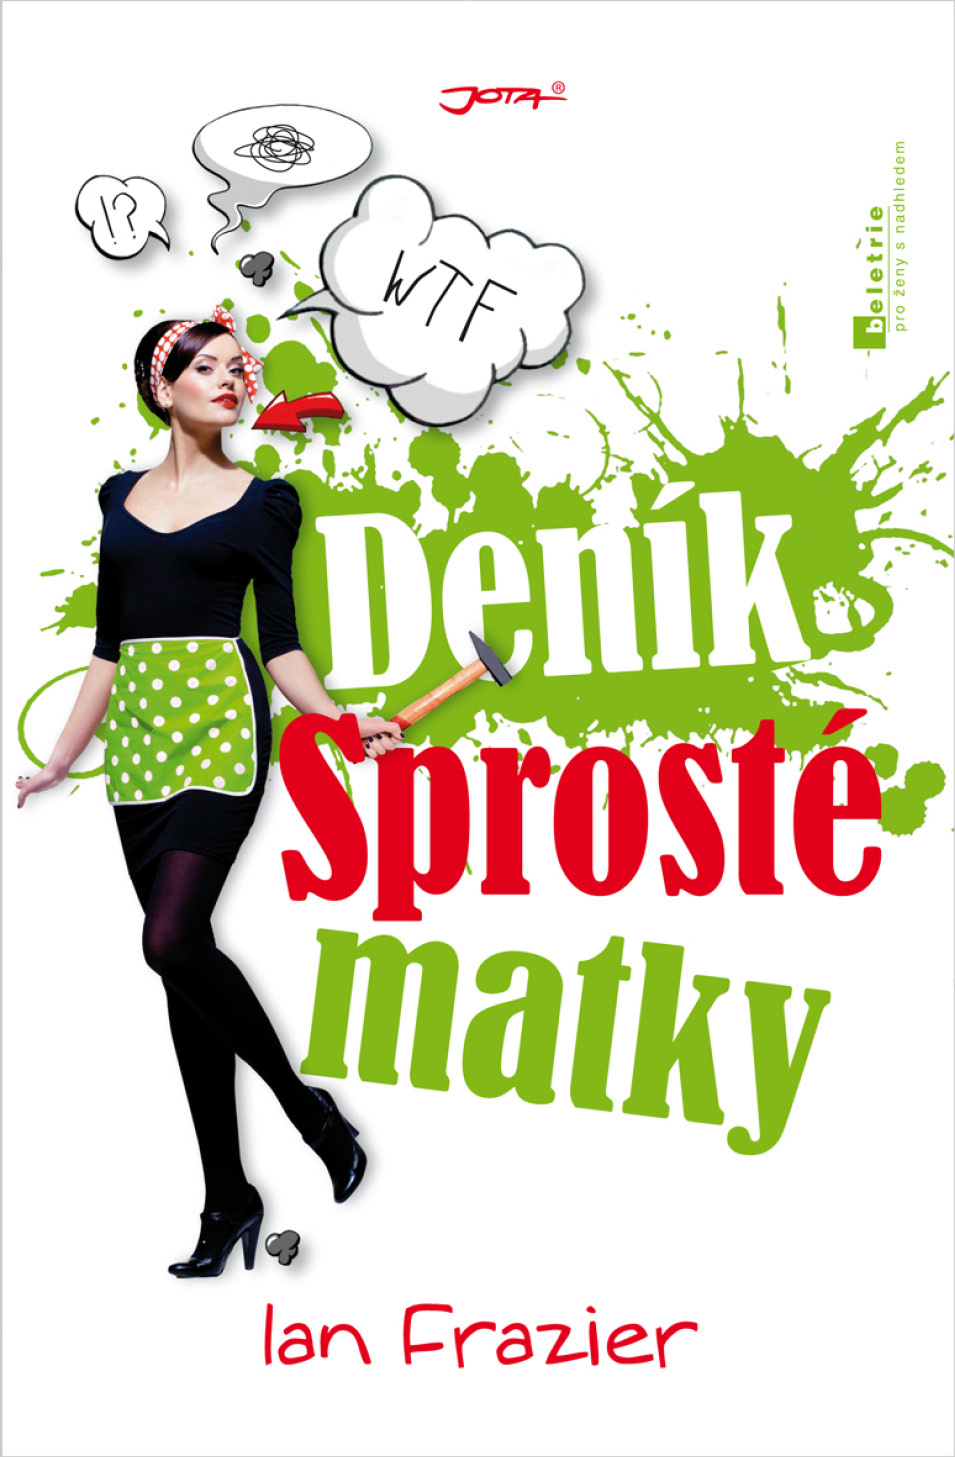 media/covers/a/0/c0/Denik-Sproste-matky.jpg